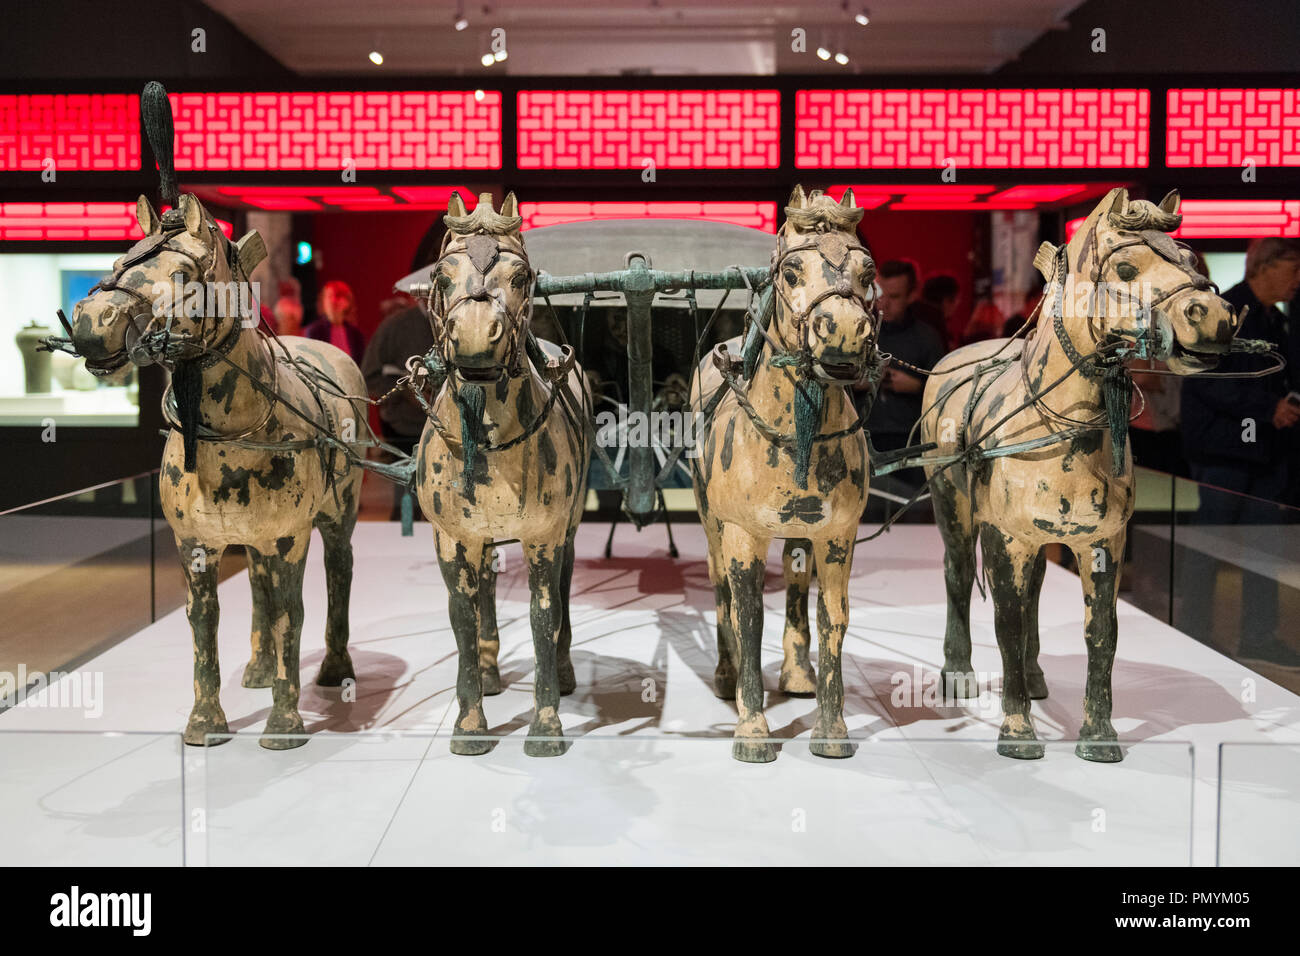 Liverpool William Brown Street World Museum China's First Emperor & The Terracotta Warriors Exhibition chariot four horses Stock Photo